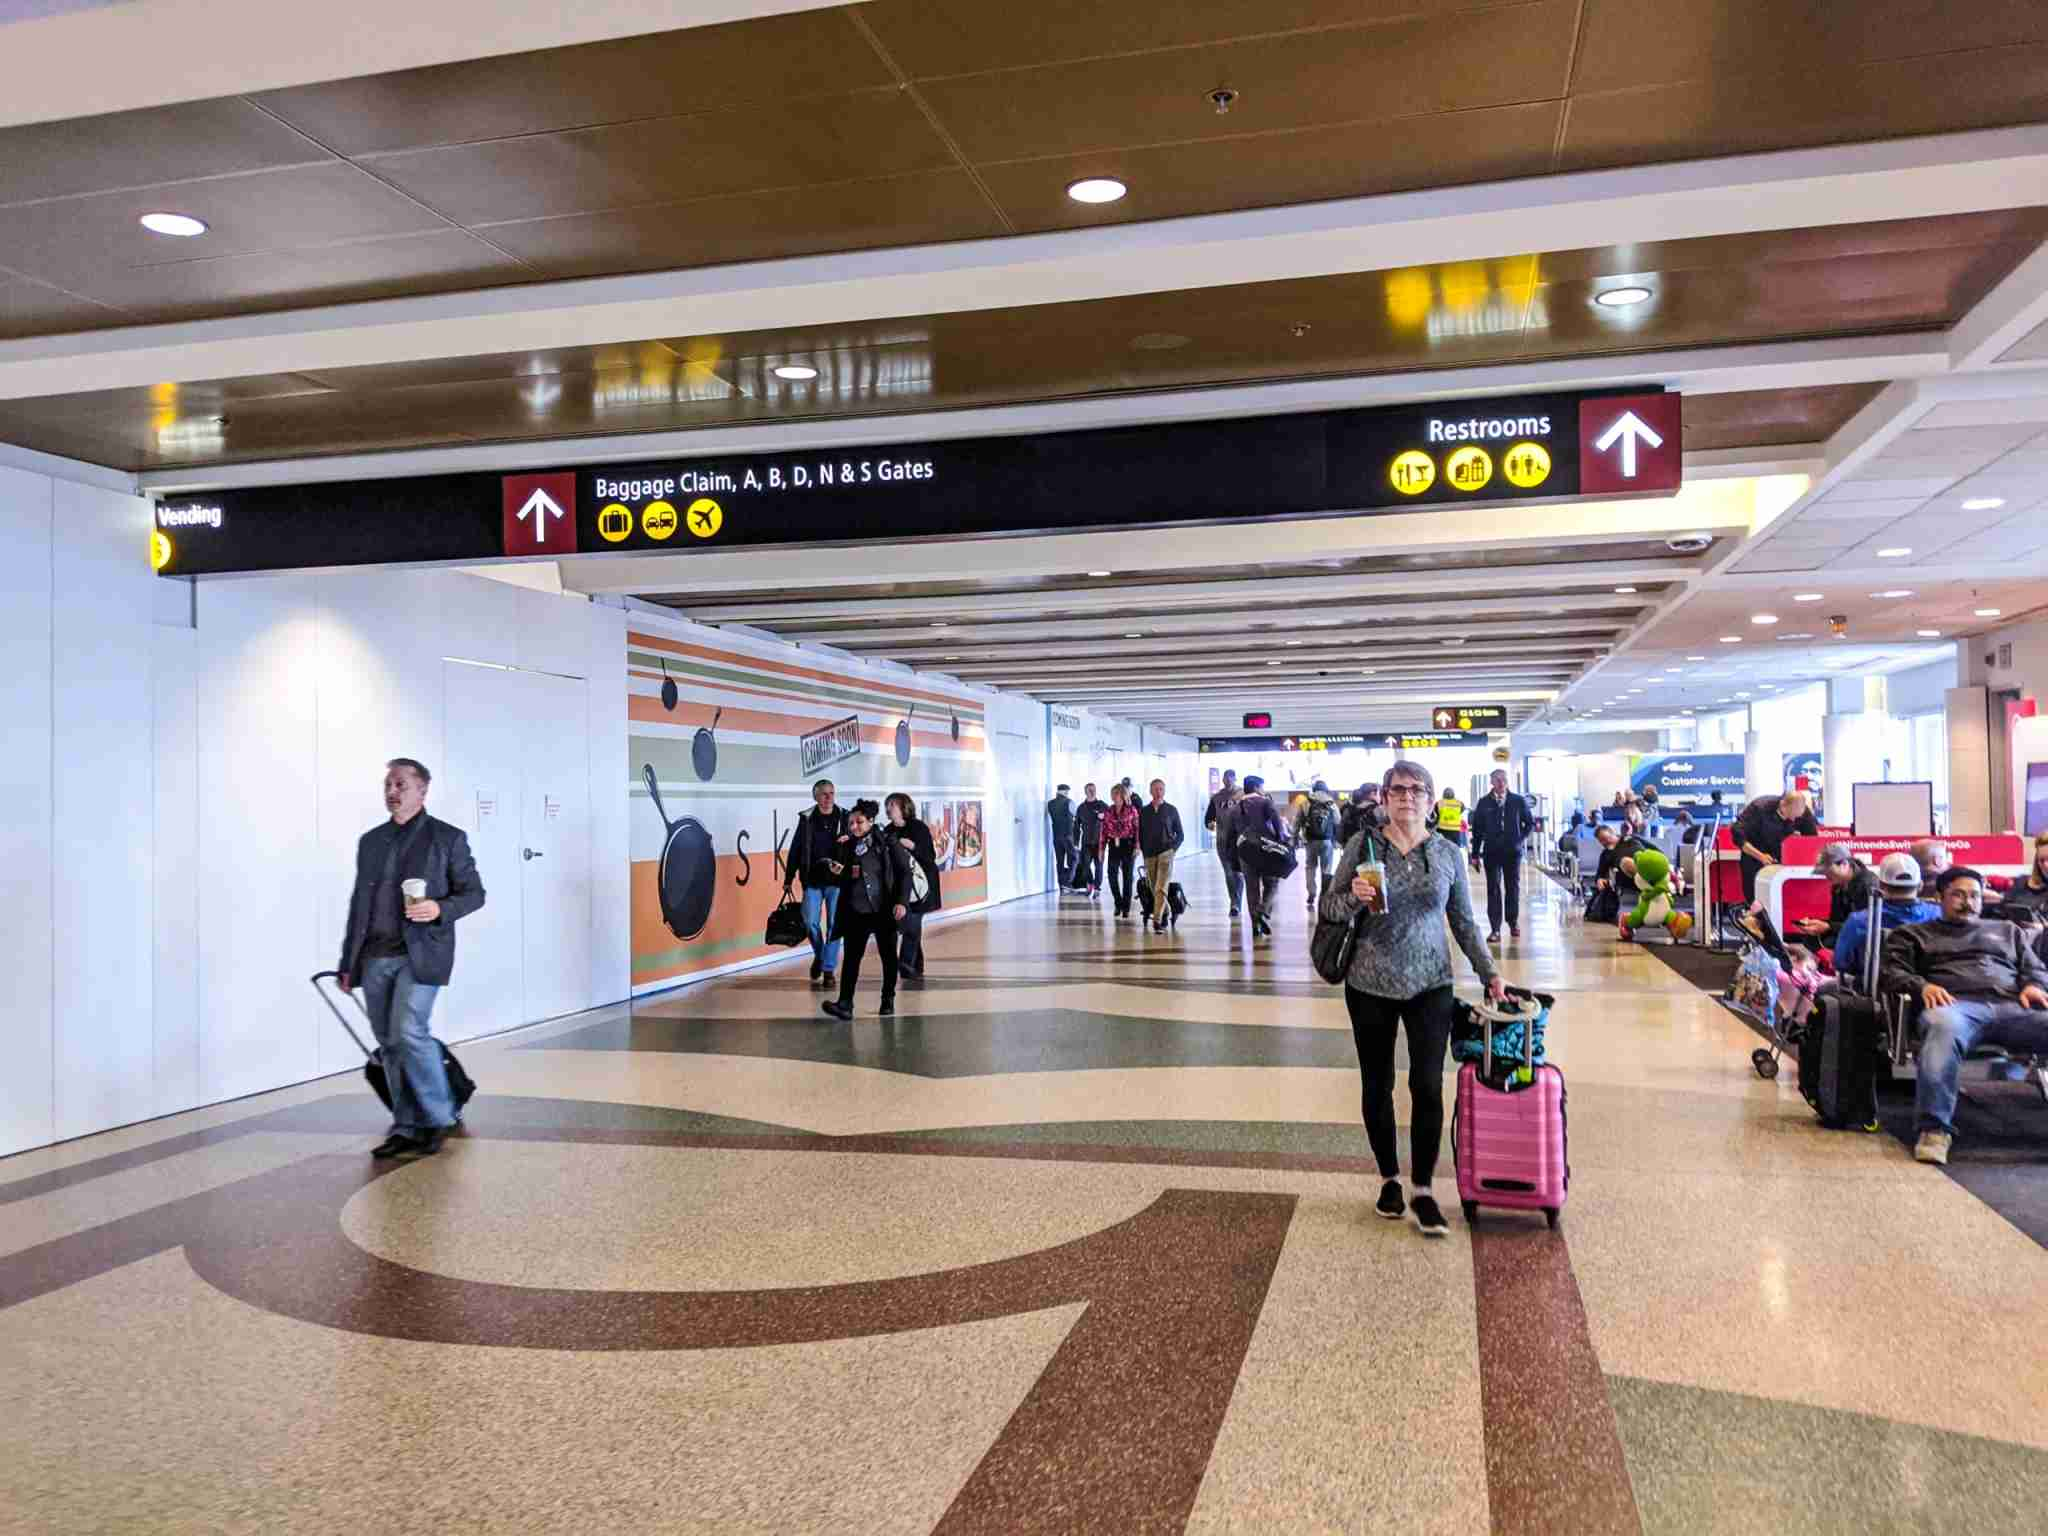 The Seattle airport was relatively crowded compared to its counterparts in other cities in early March, 2020